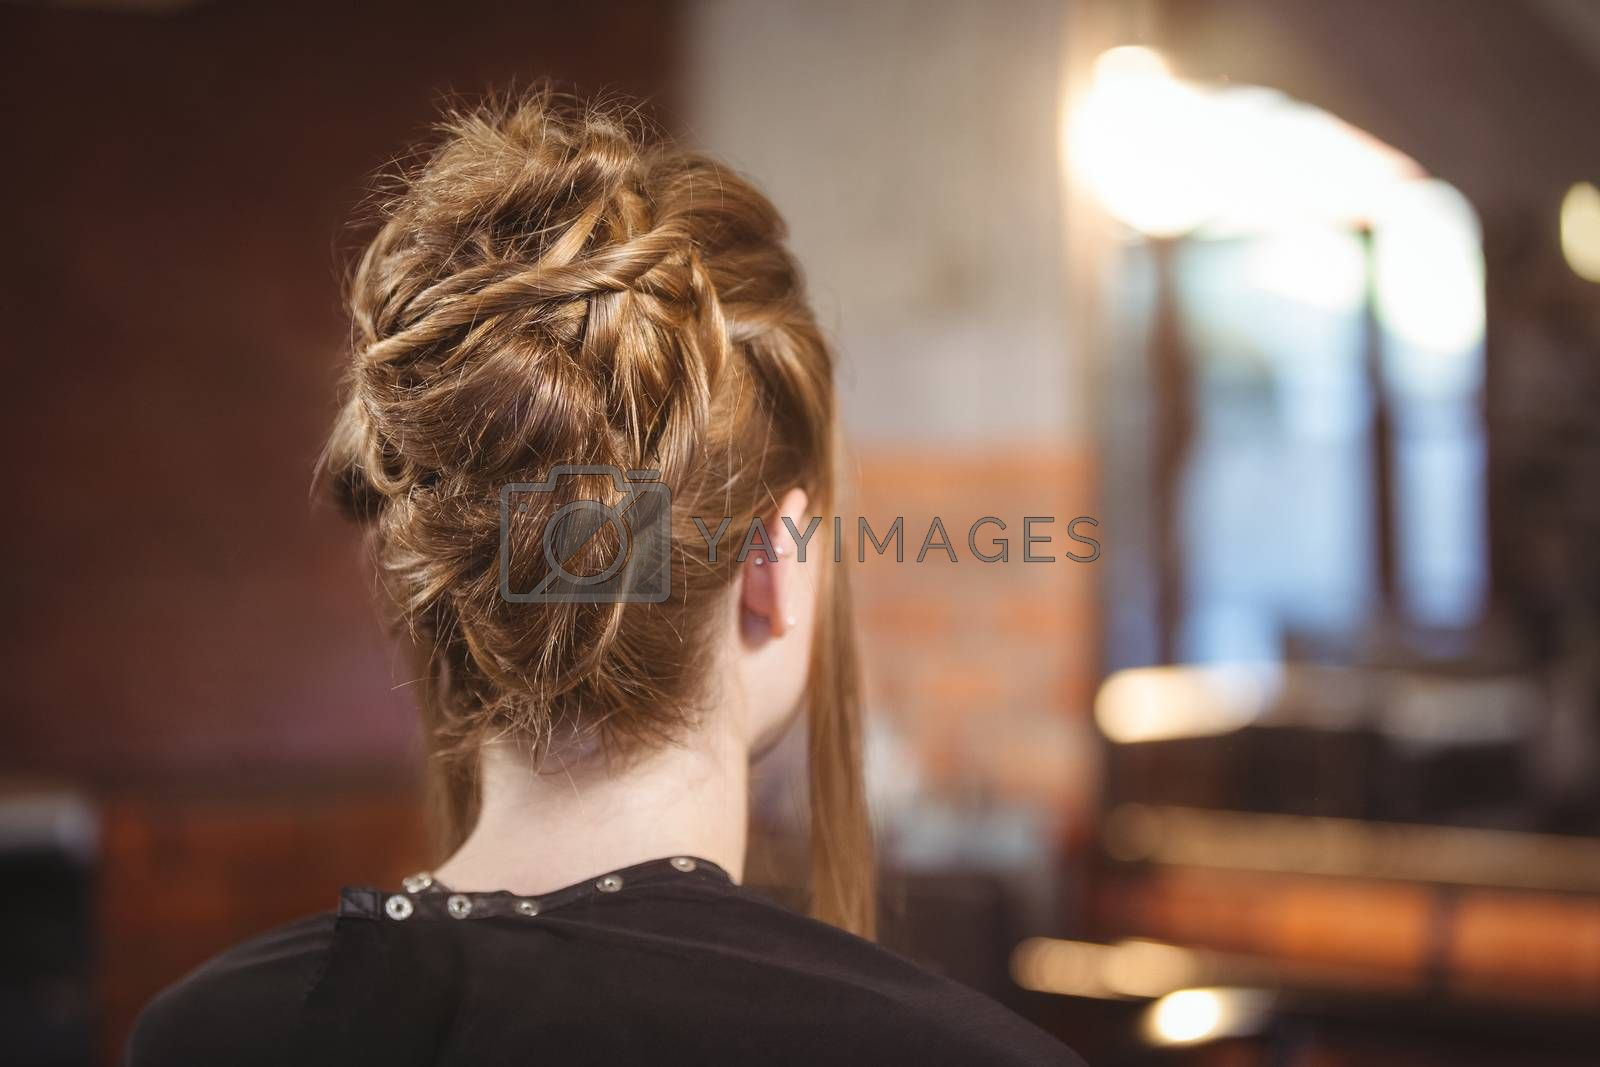 Rear view of woman with updo hairstyle at a salon